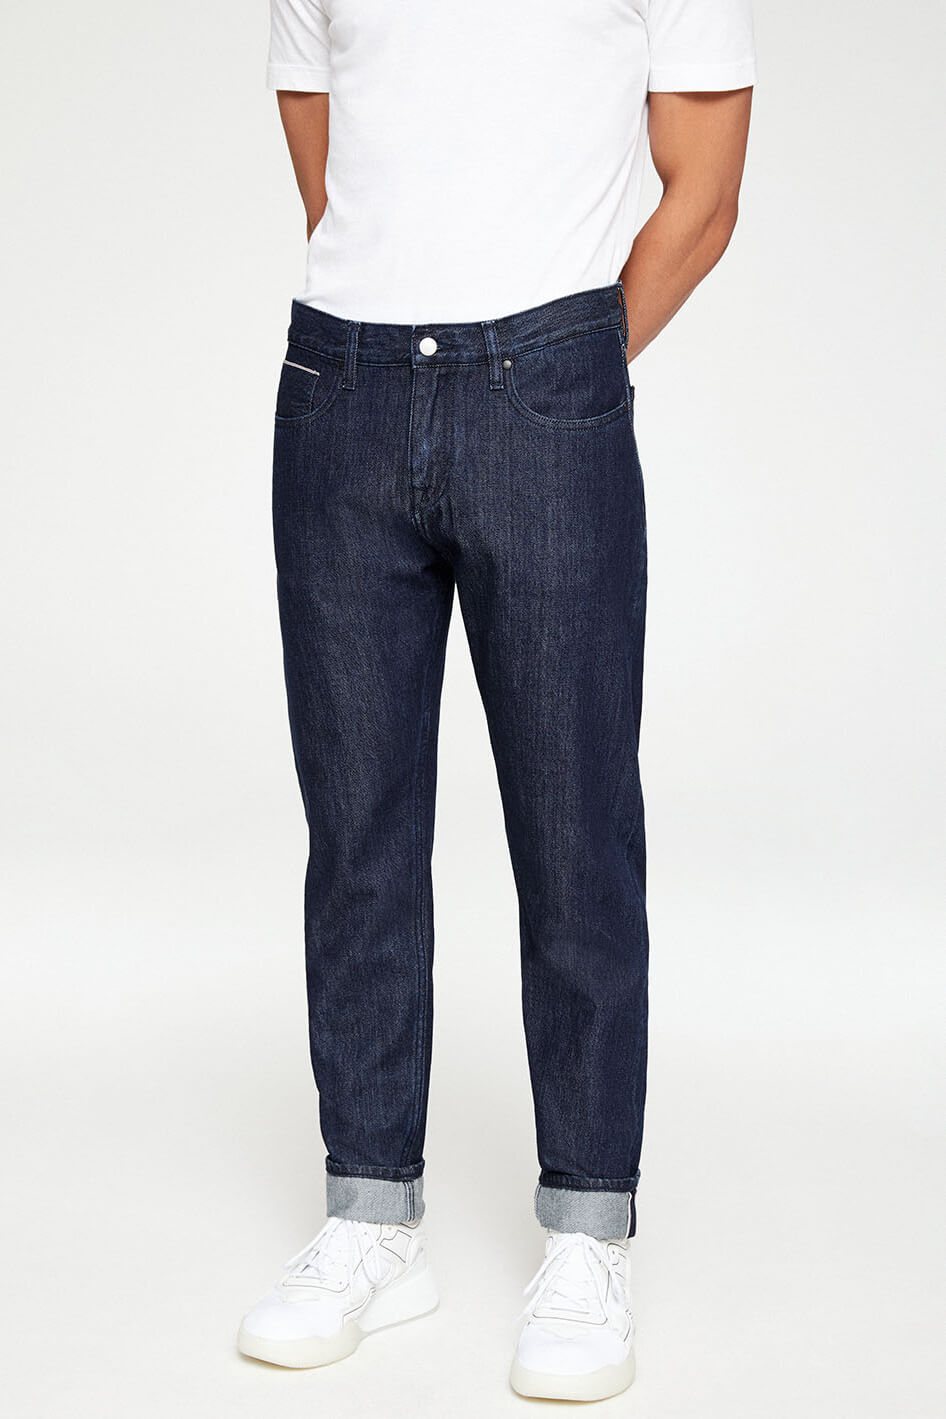 Jeans Aaro Selvedge Rinse Blau from LOVECO